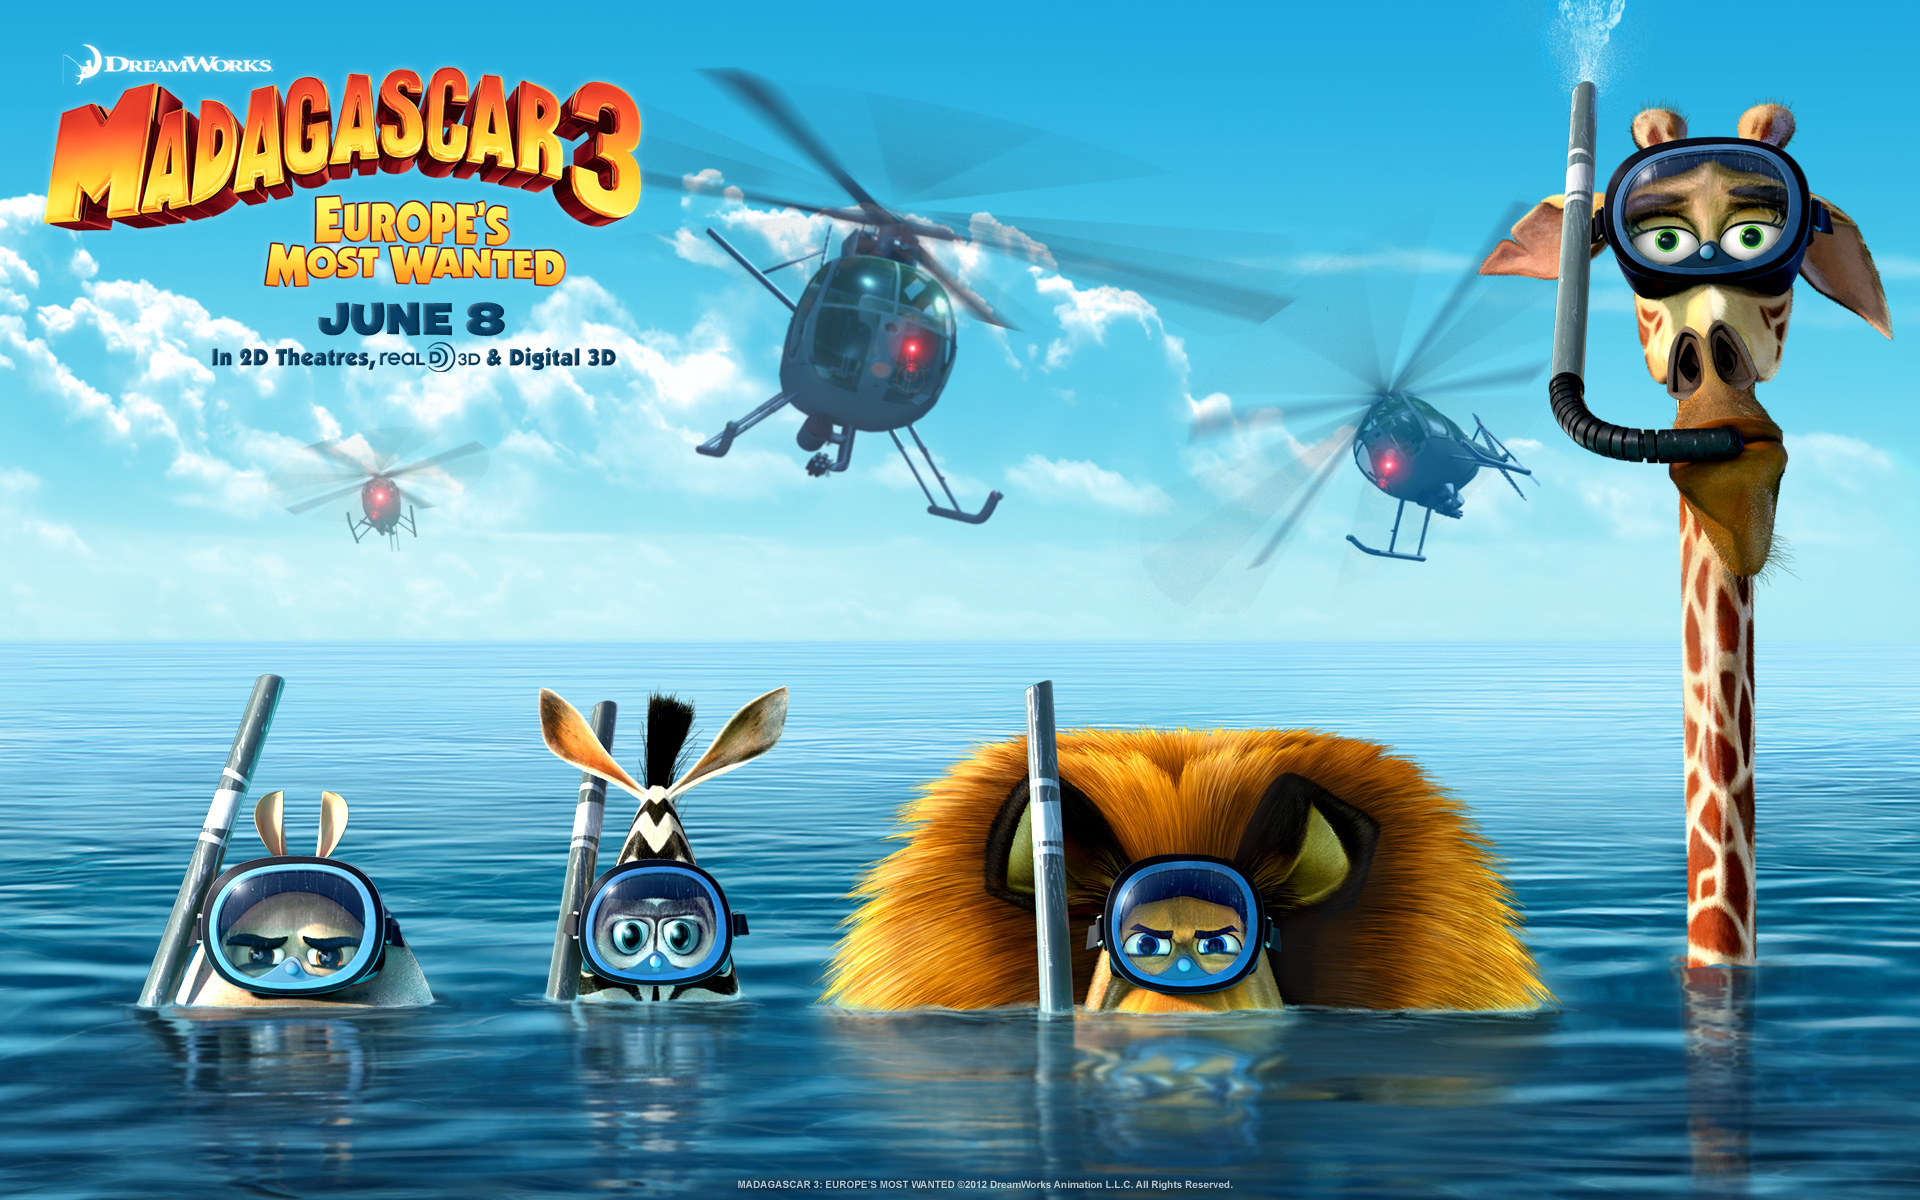 madagascar 3 1920x1200 widescreen